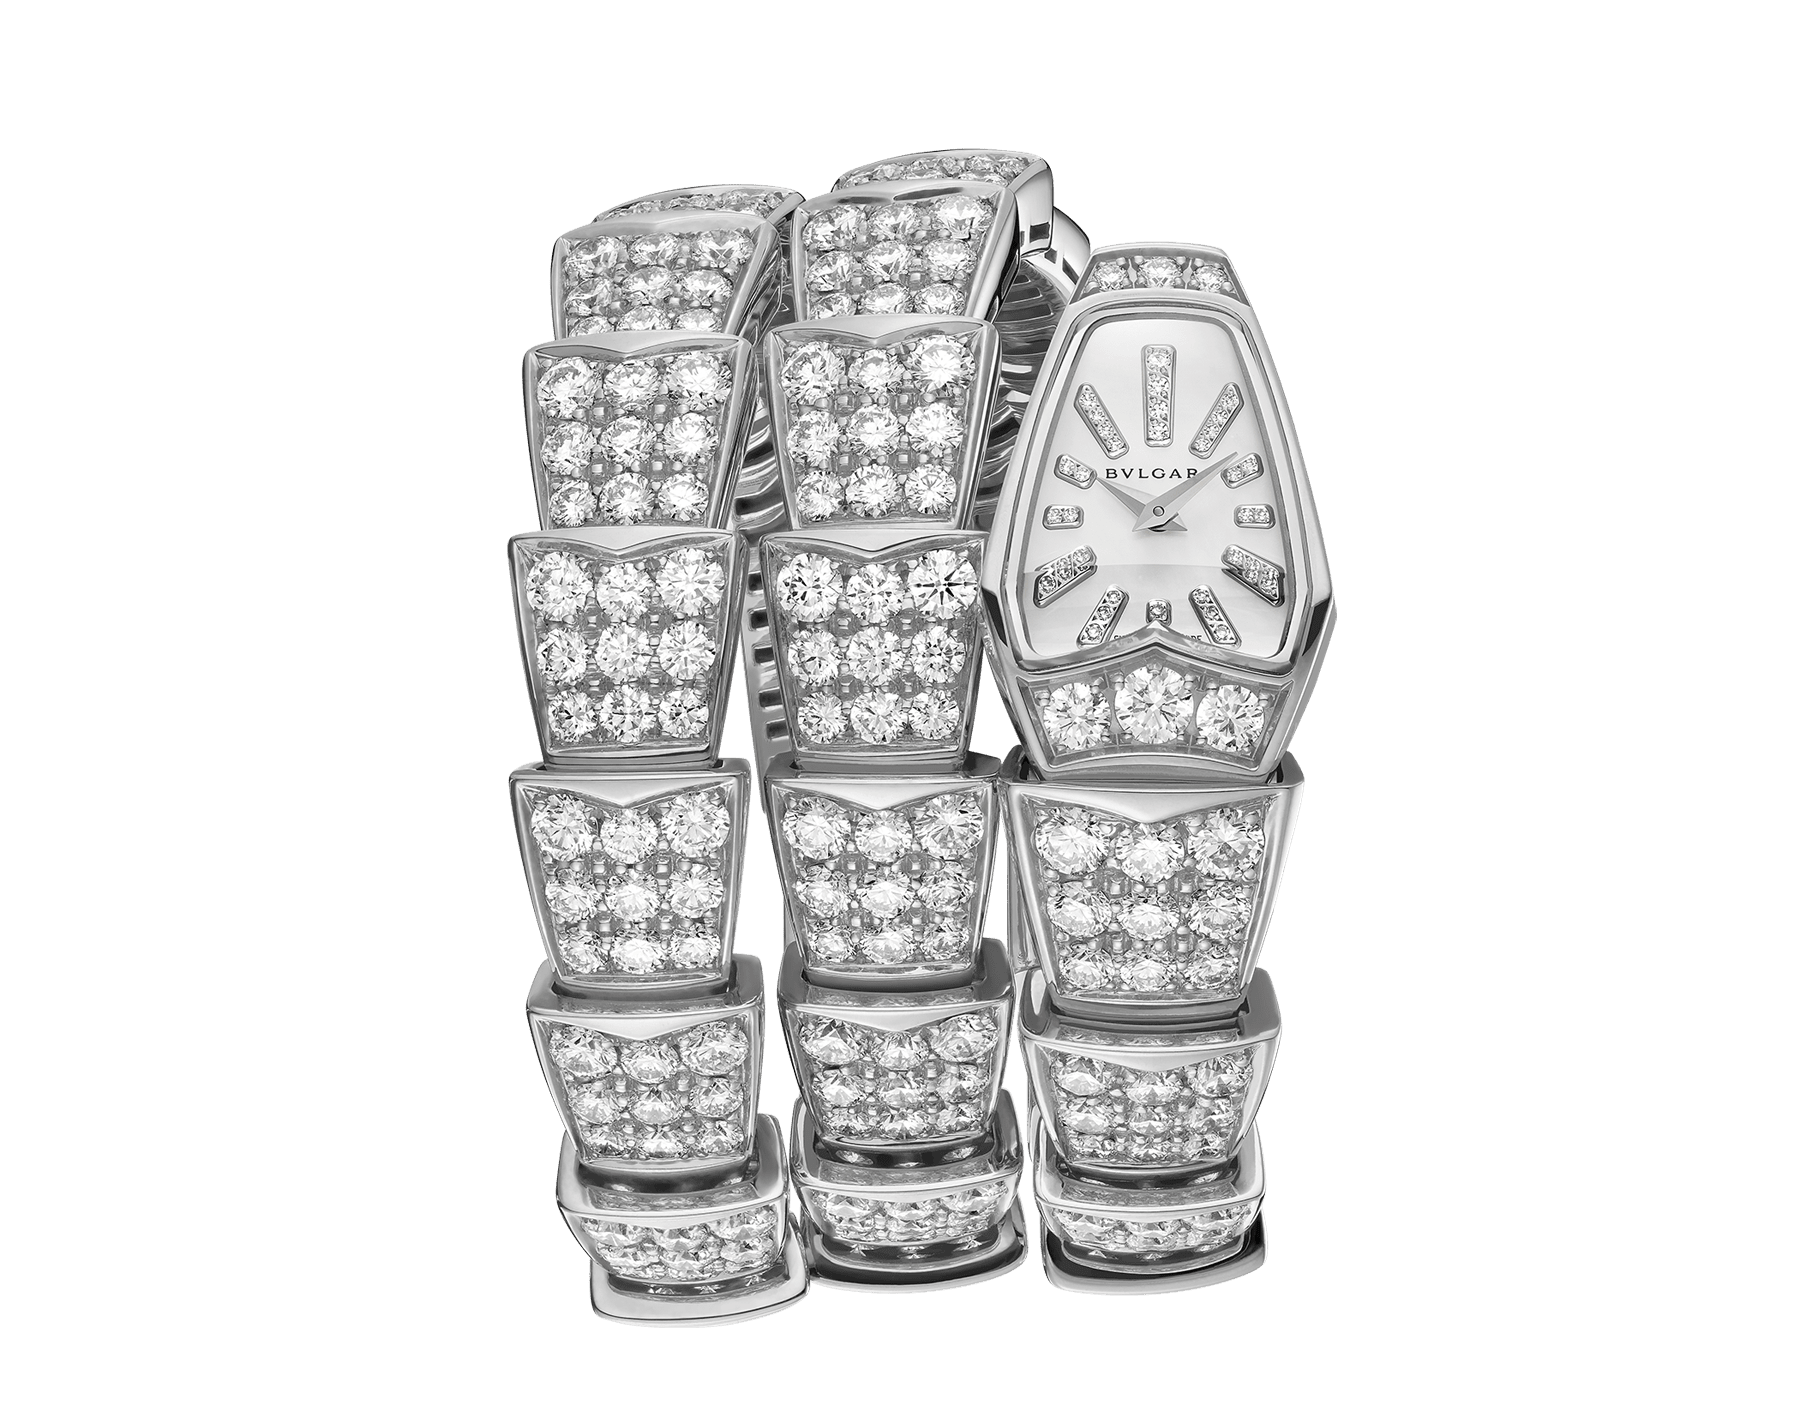 Serpenti Jewellery Watch in 18 kt white gold case and double spiral bracelet, both set with brilliant cut diamonds, white mother-of-pearl dial and diamond indexes. 101786 image 1